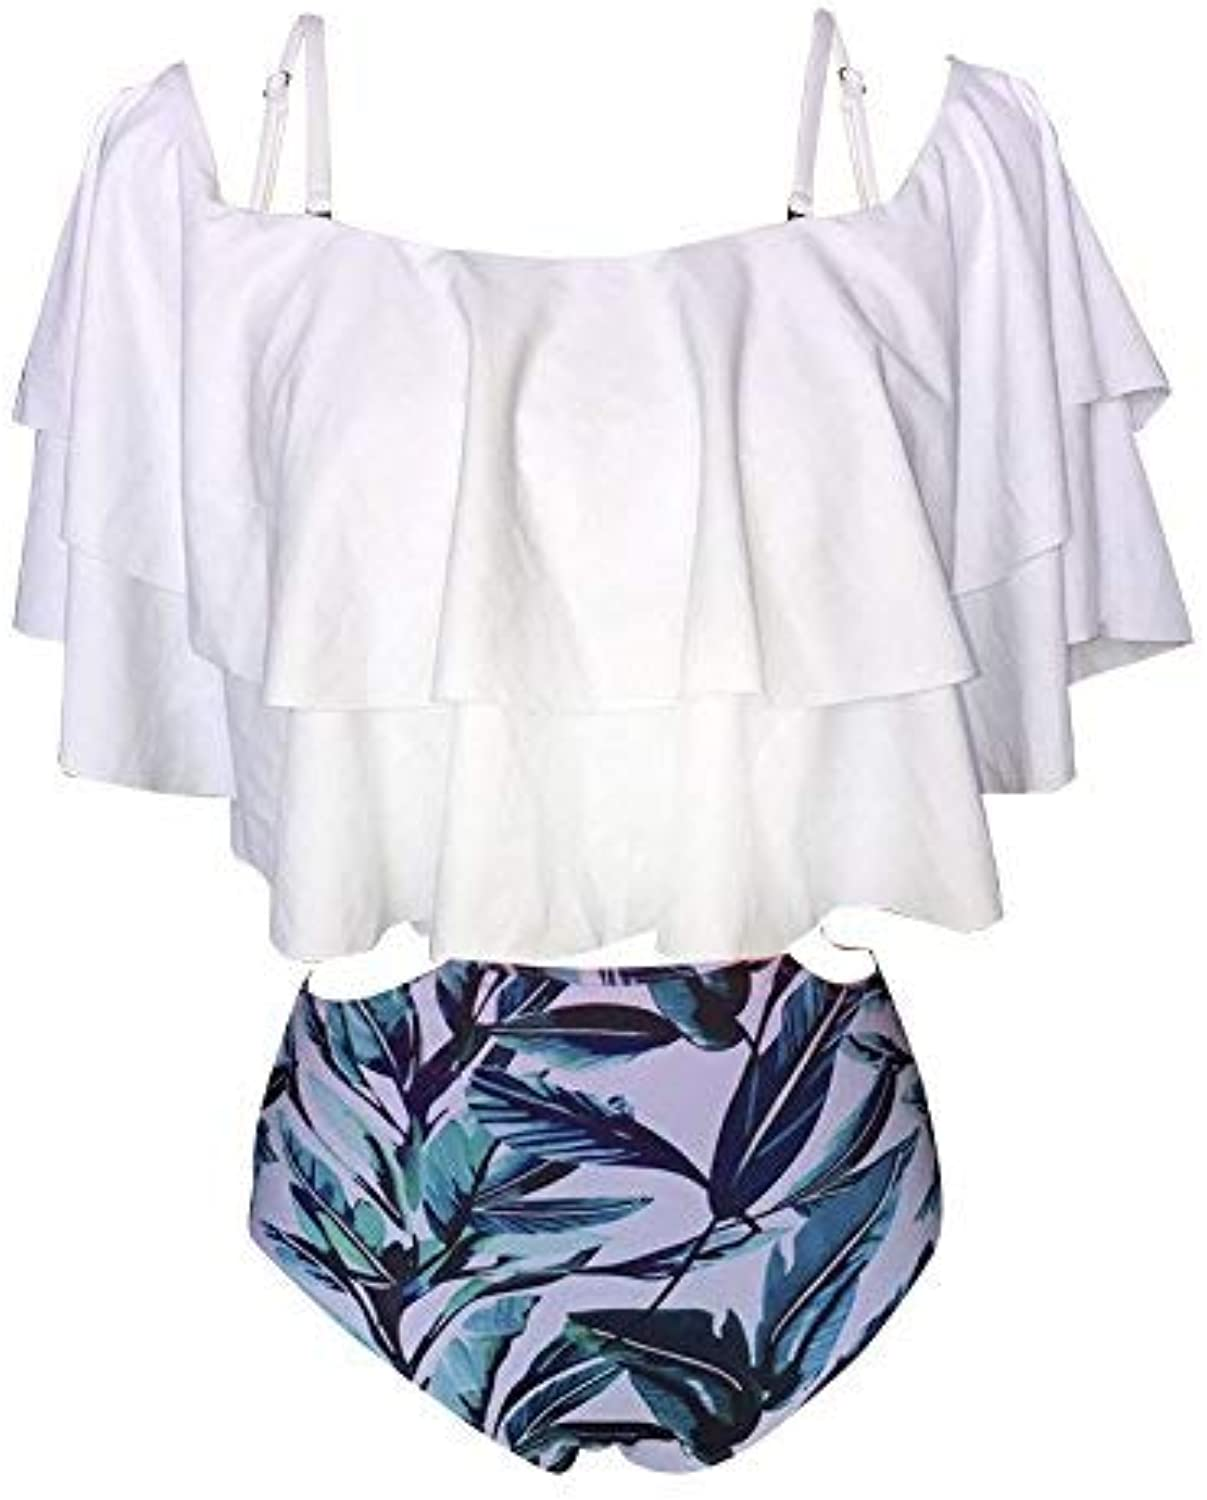 Lotus Leaf Edge Shorts Swimsuit Stamp Shorts Slotted Shoulder Bikini Swimsuit, White,XXL (color   As Shown, Size   One Size)